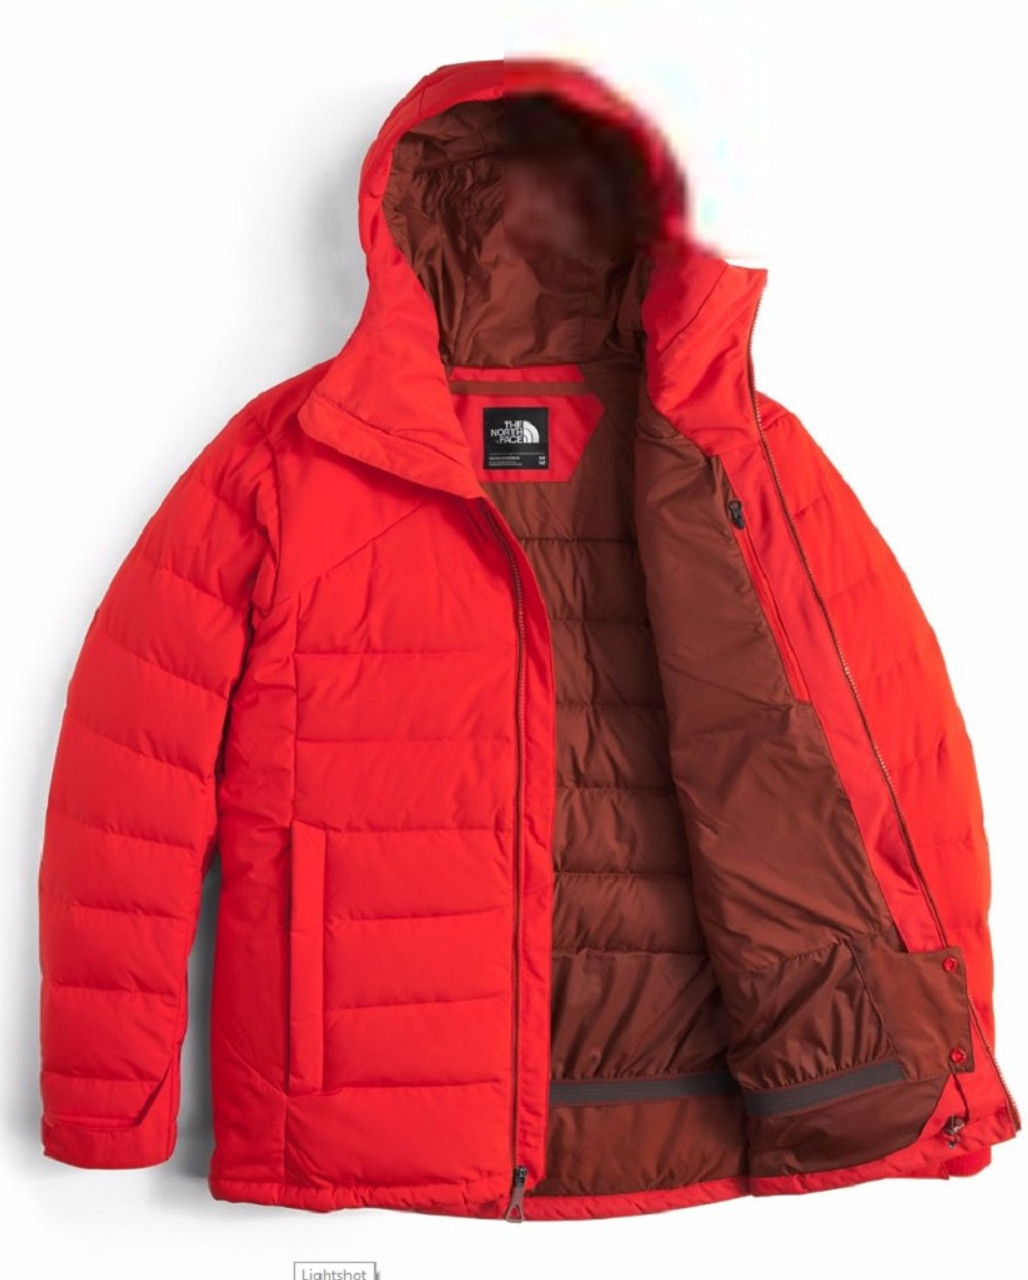 f9a5c9c7d The North Face Corefire Down Jacket '18 | Men's